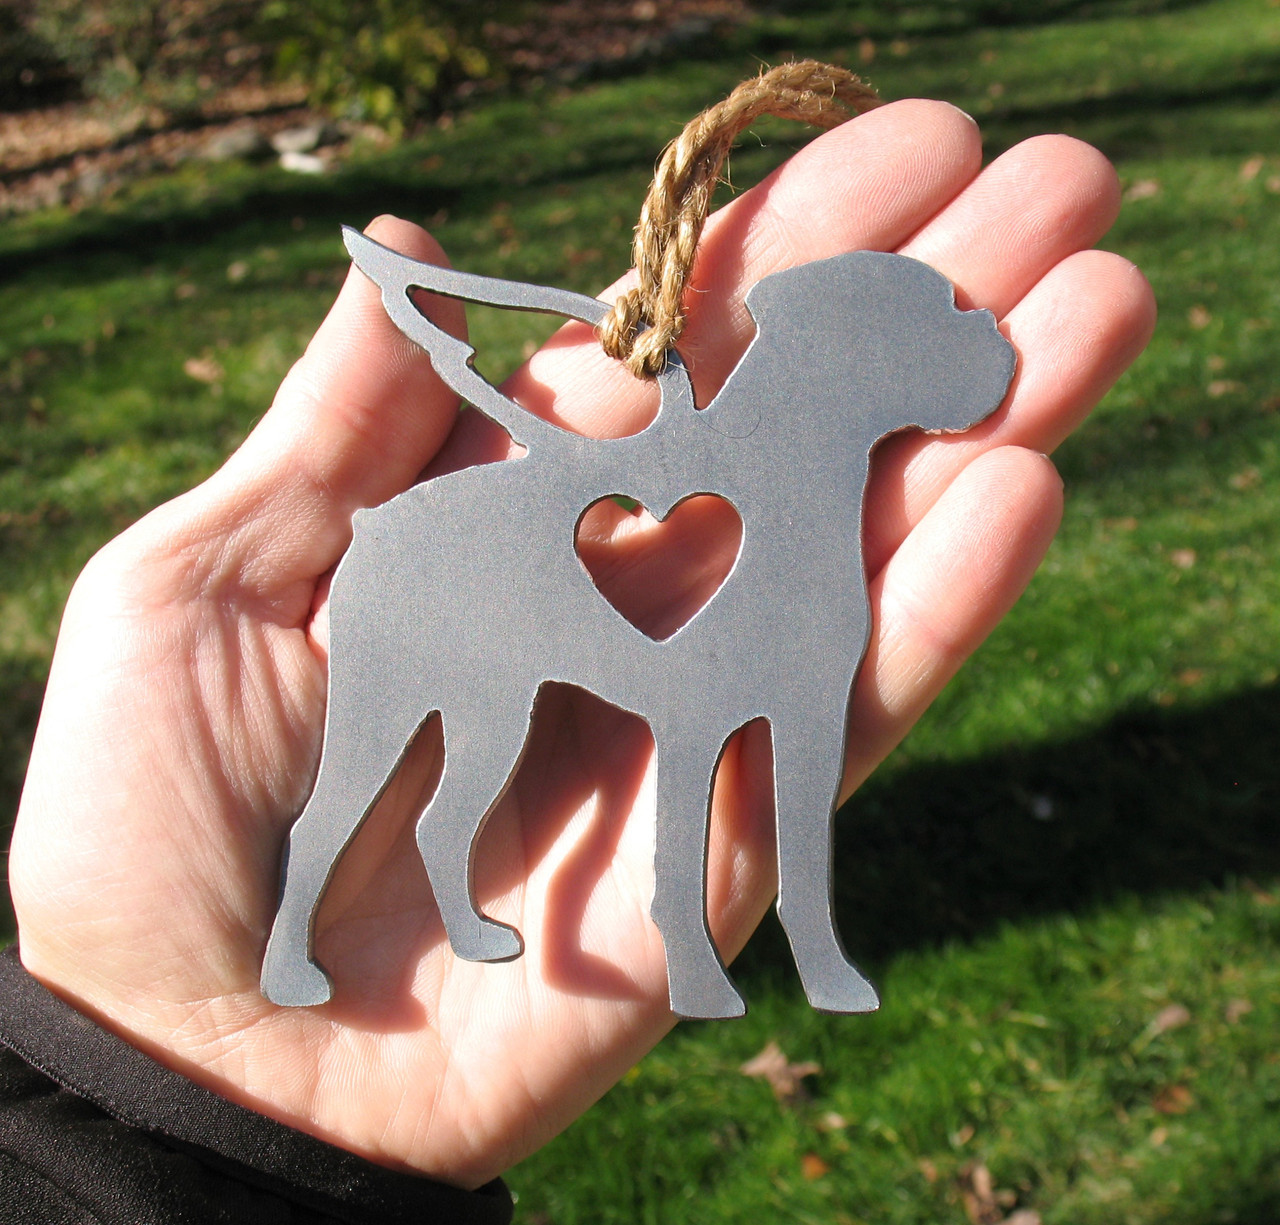 Boxer Dog 5 Pet Loss Gift Ornament Angel - Pet Memorial - Dog Sympathy Remembrance Gift - Metal Dog Christmas Ornament